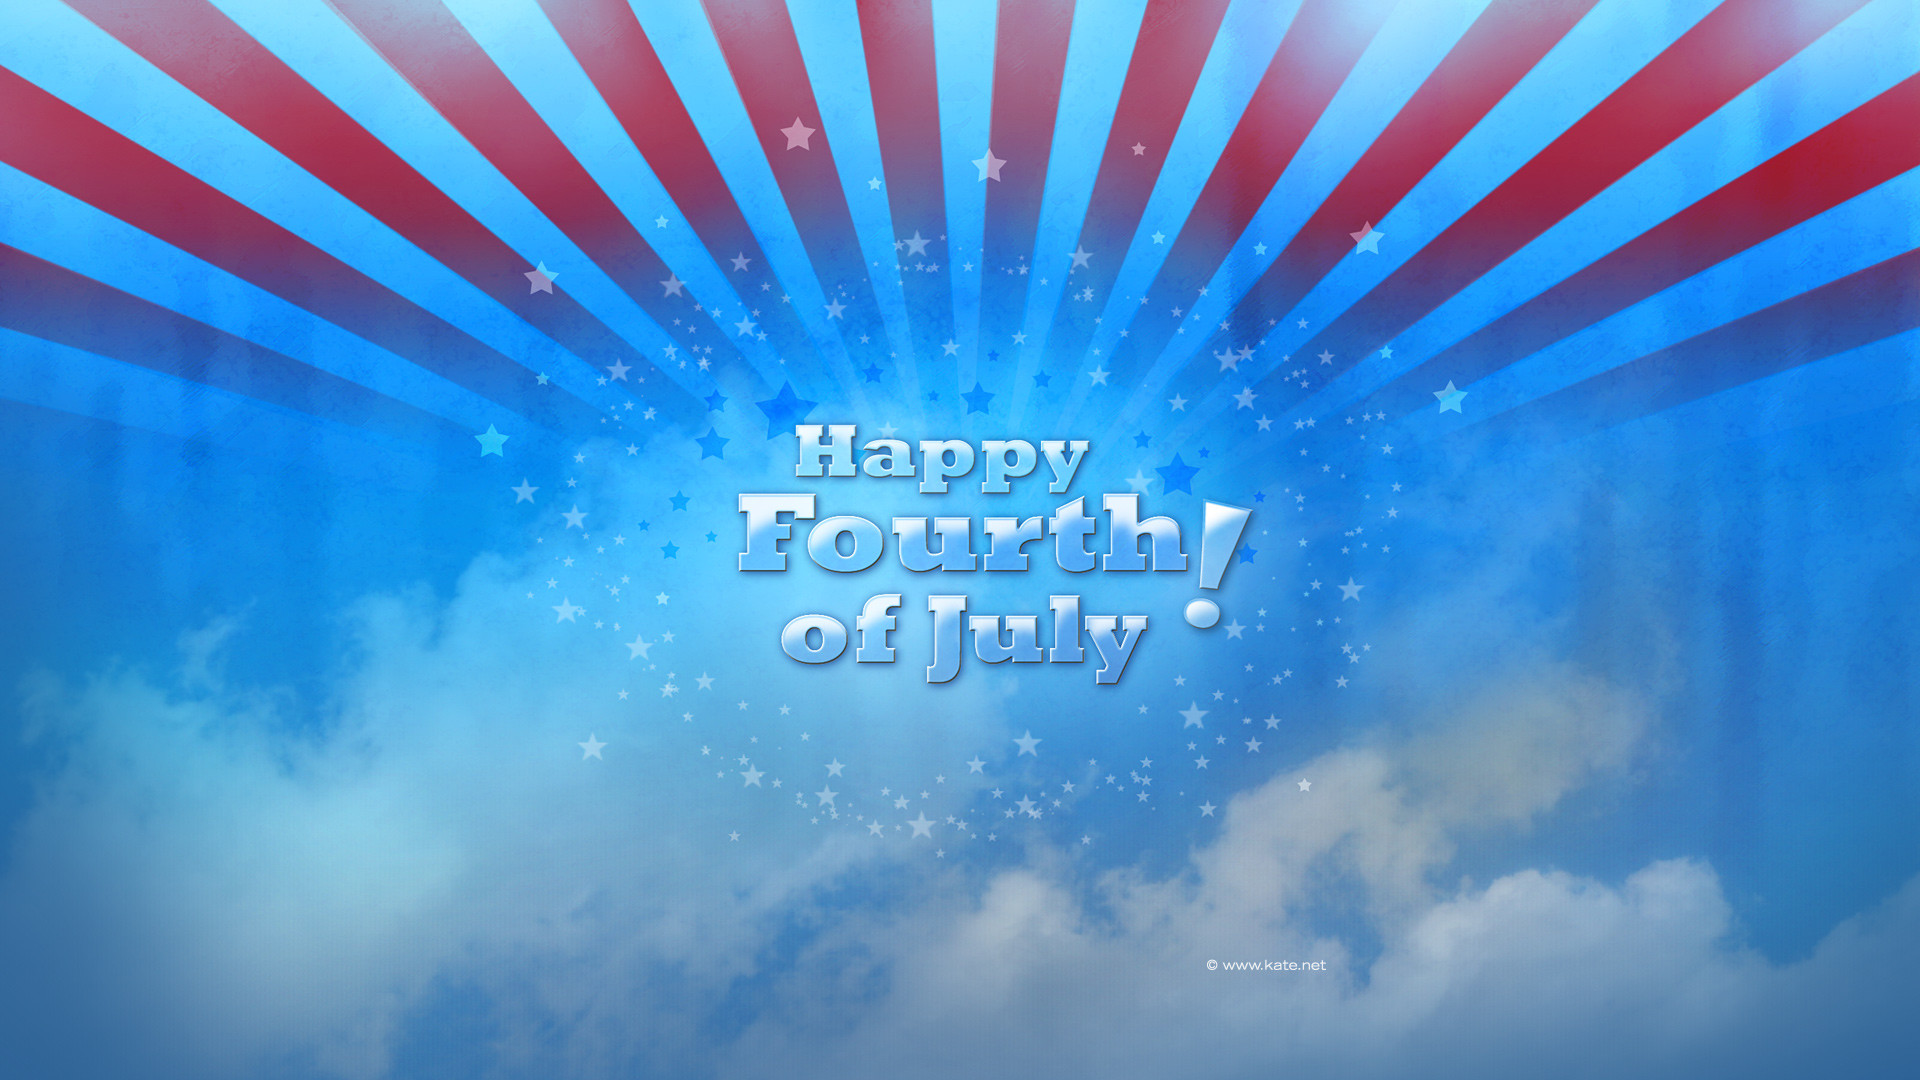 Happy Fourth of July Background